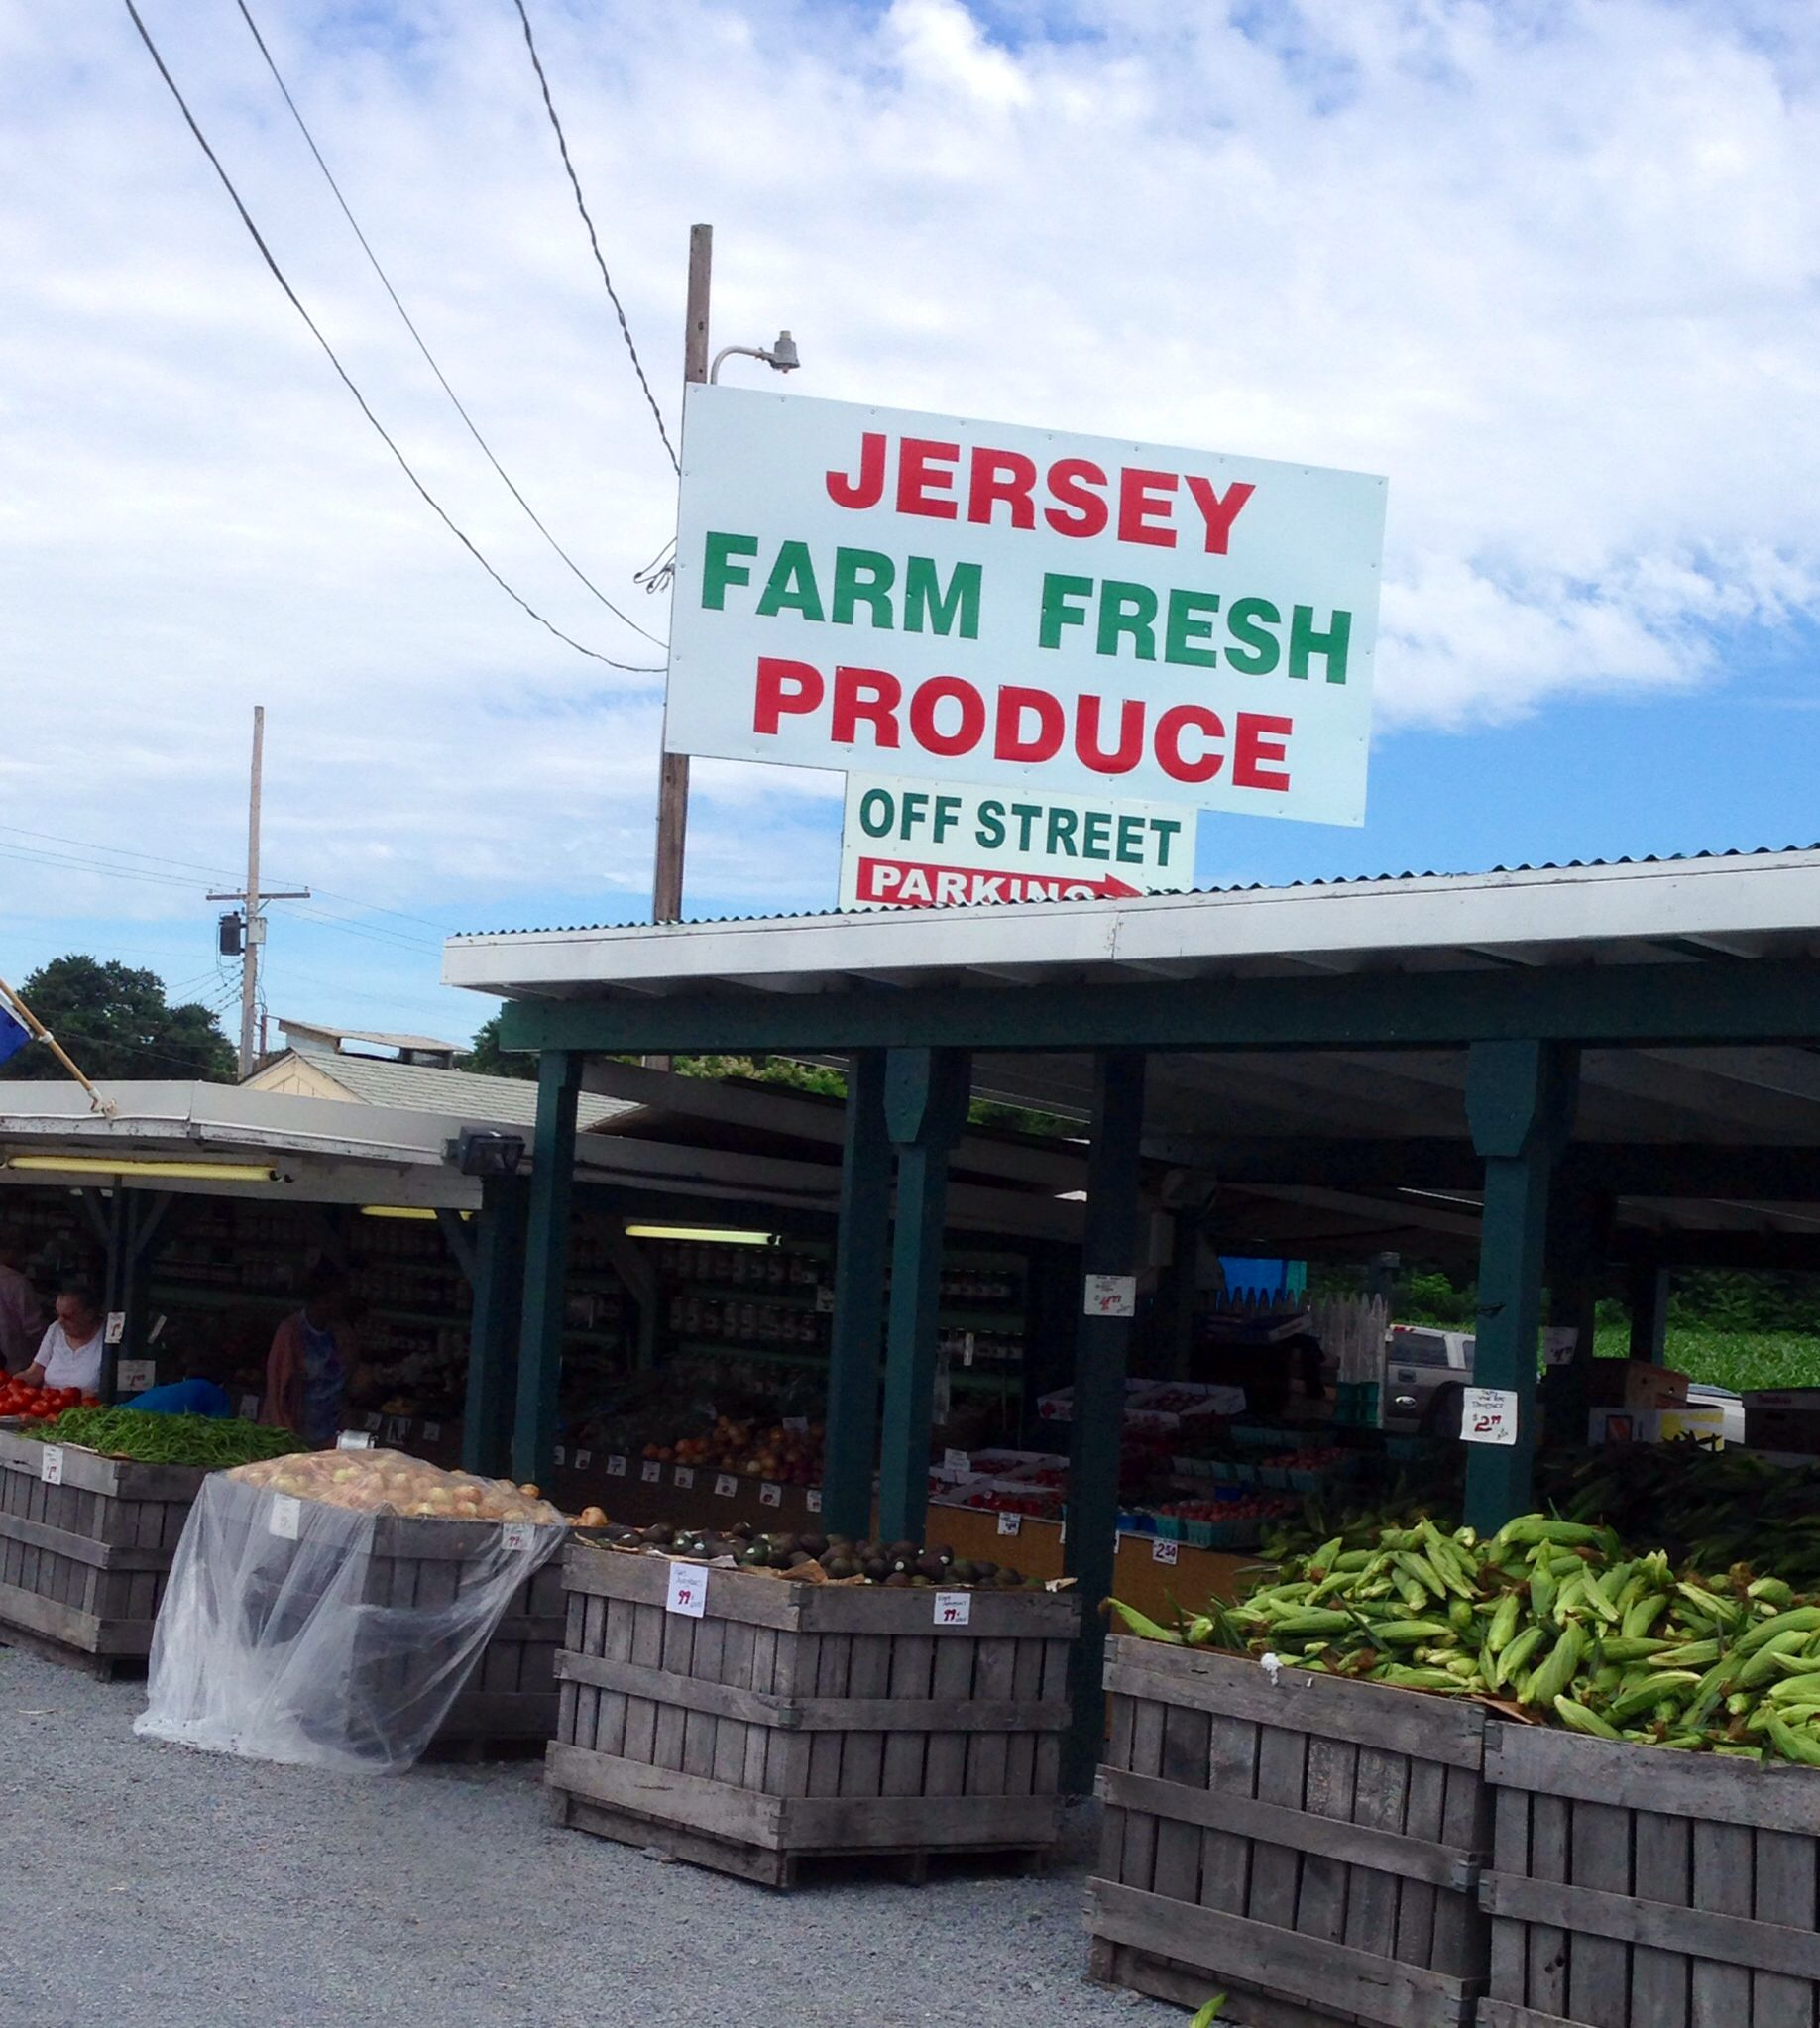 Jersey Fresh Farm Stands....NJ used to be called the